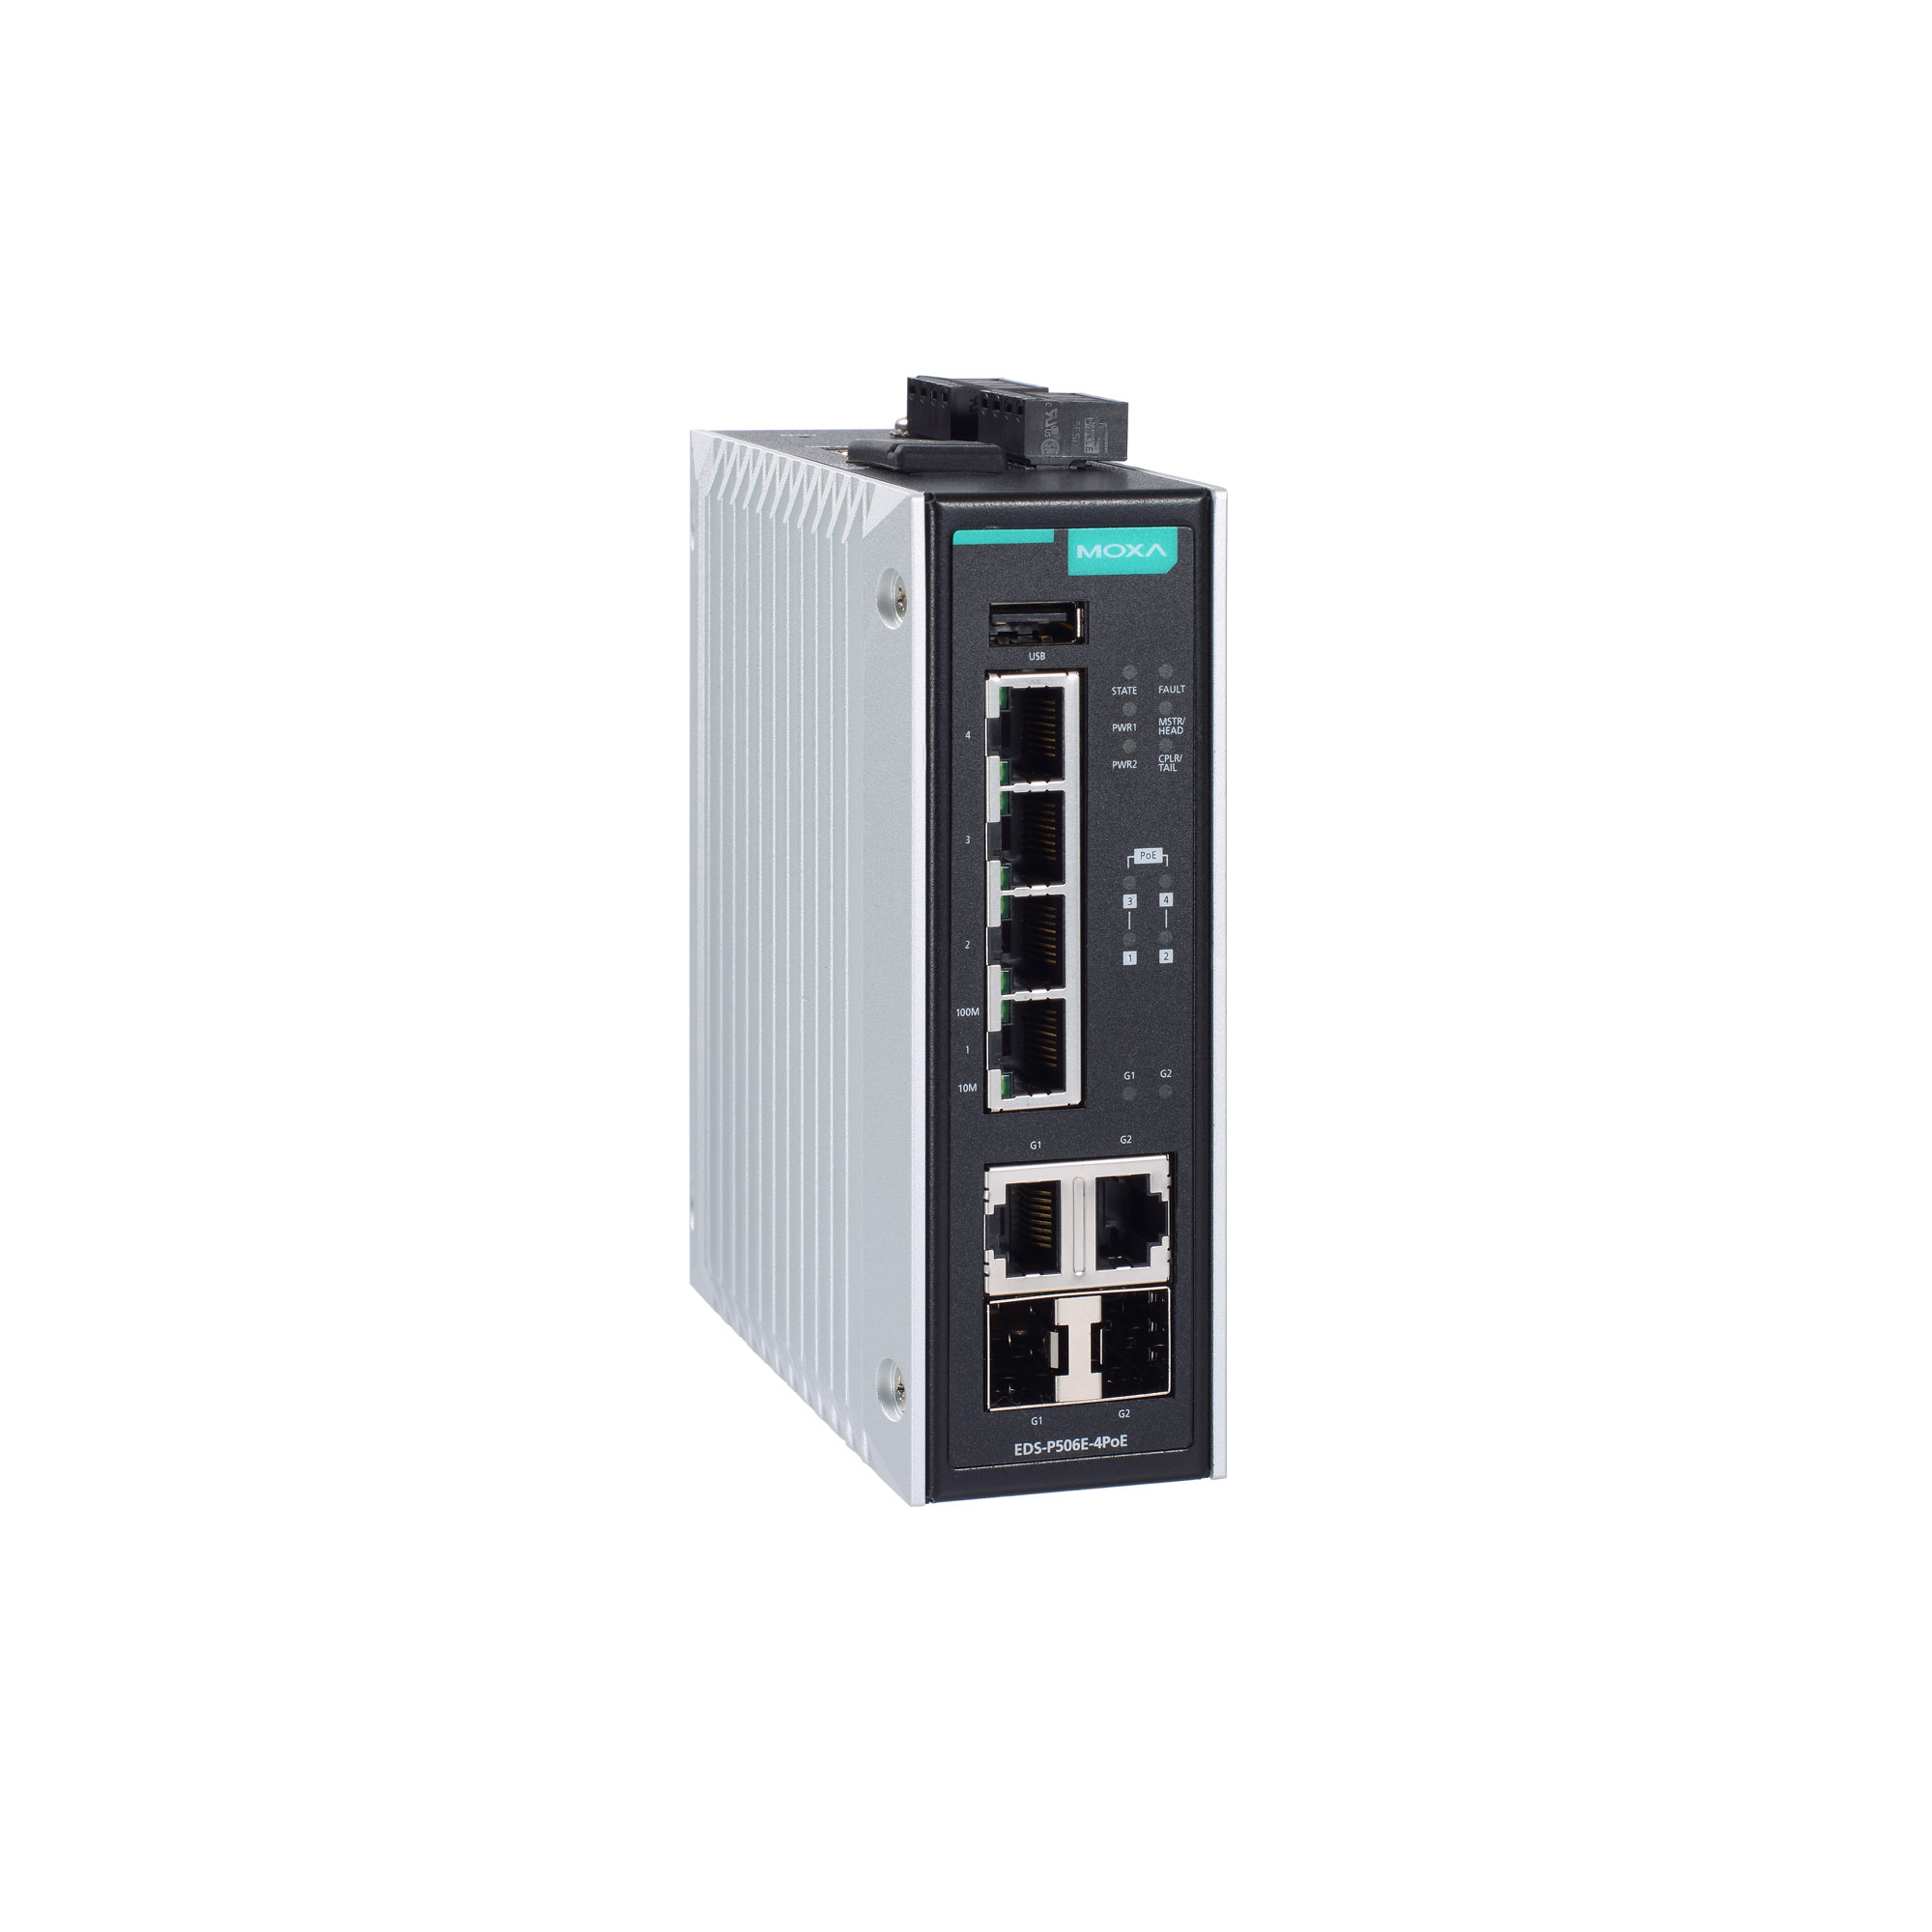 EDS-P506E Series - Layer 2 Managed Switches   MOXA